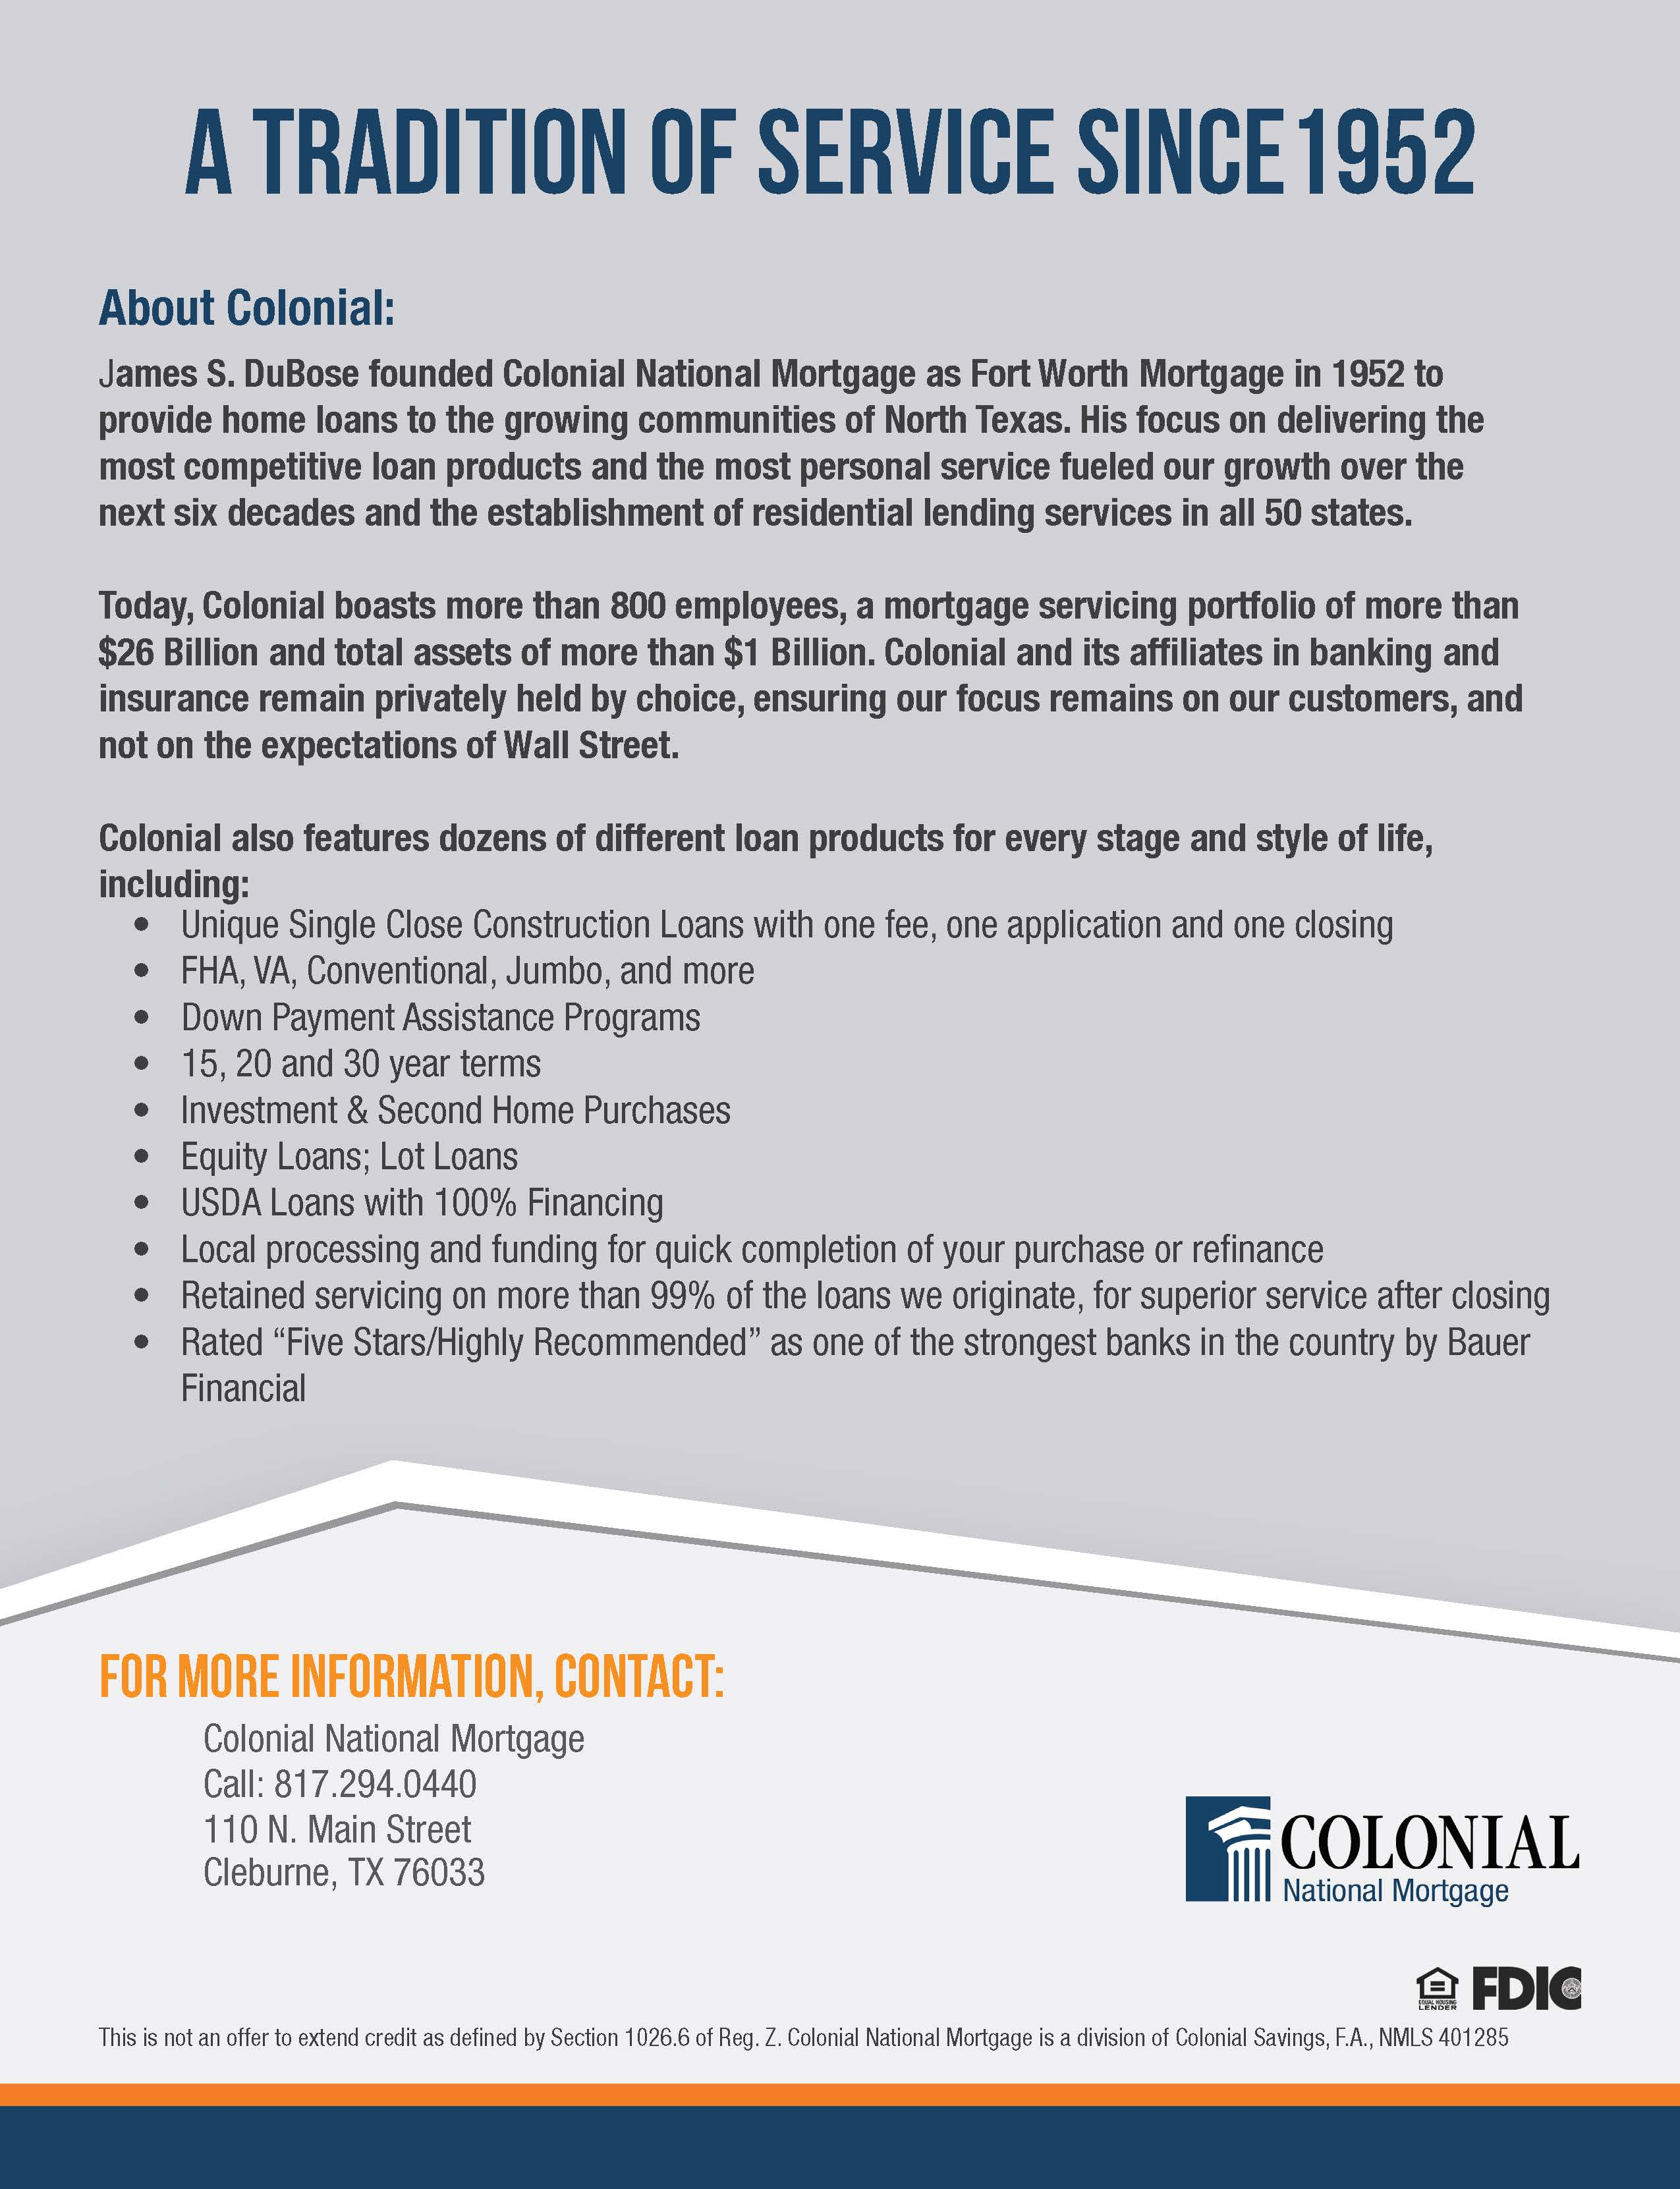 Colonial - Banking, Home Loans & Insurance image 1